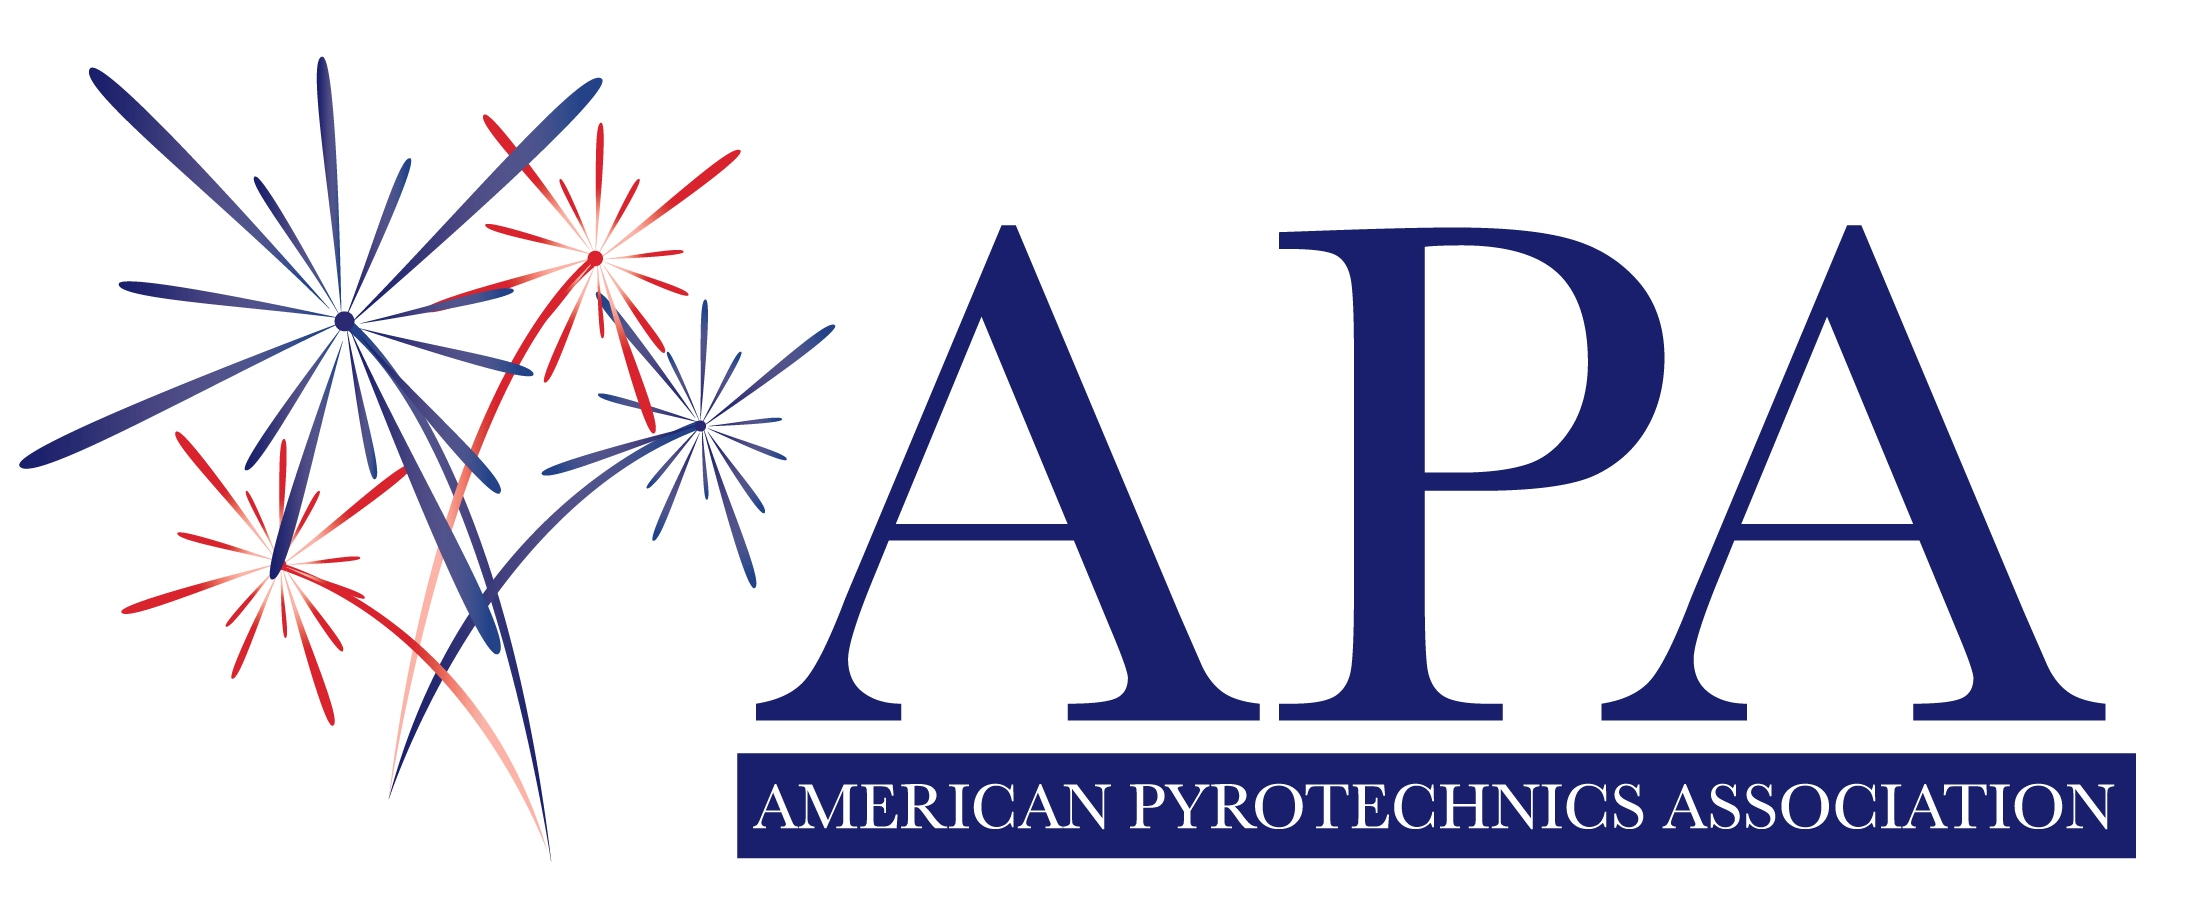 Get to know the American Pyrotechnics Association (APA)